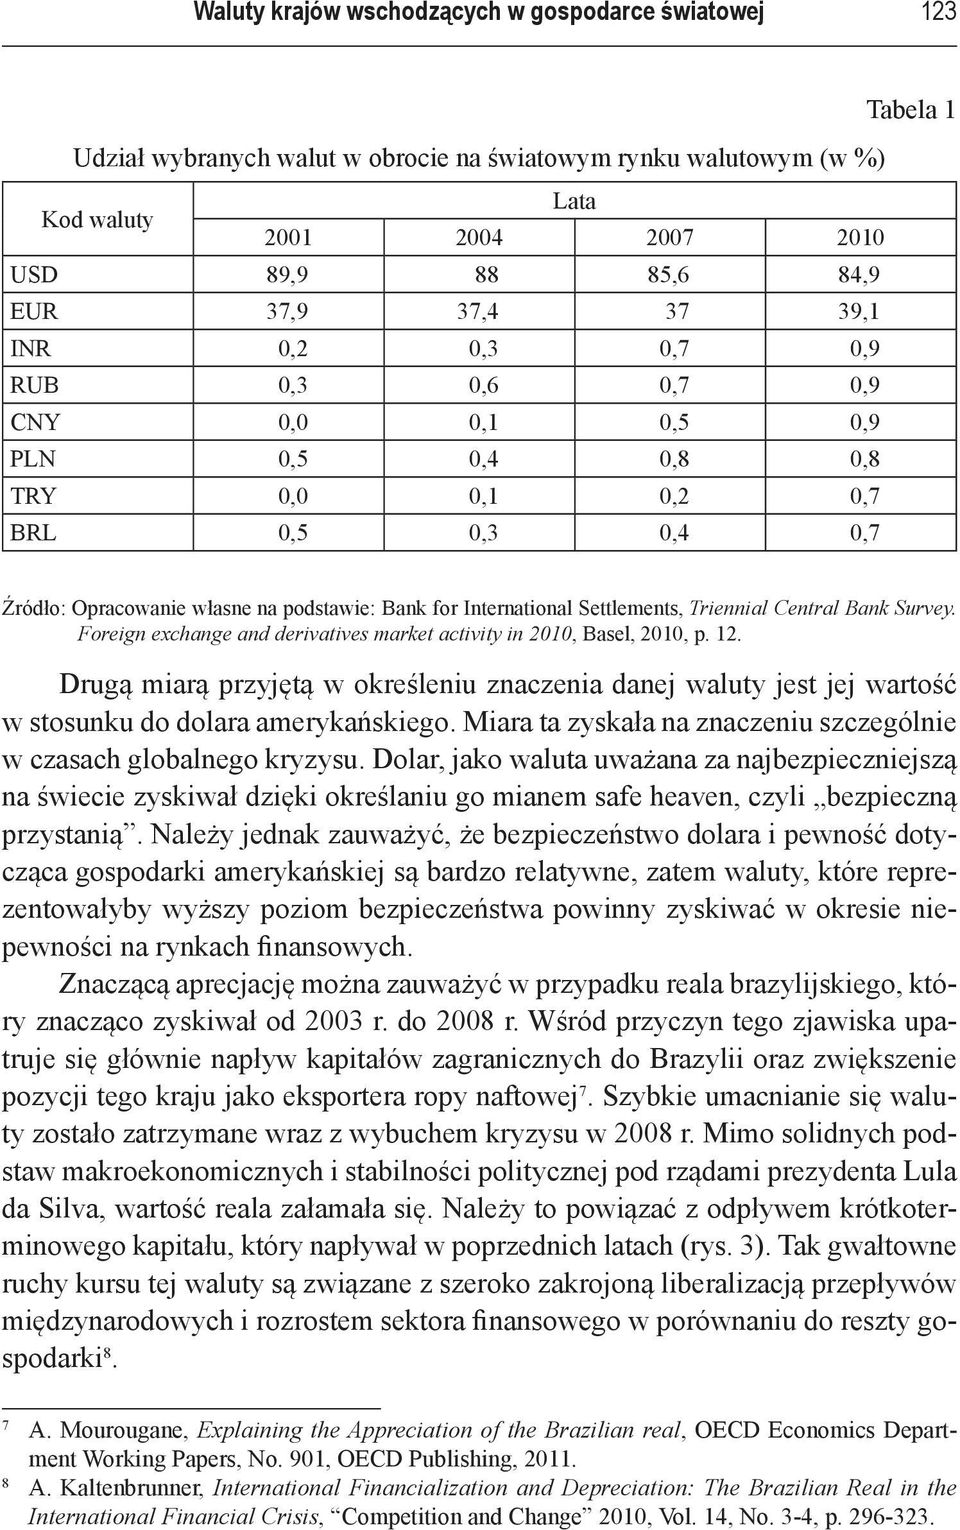 Settlements, Triennial Central Bank Survey. Foreign exchange and derivatives market activity in 2010, Basel, 2010, p. 12.